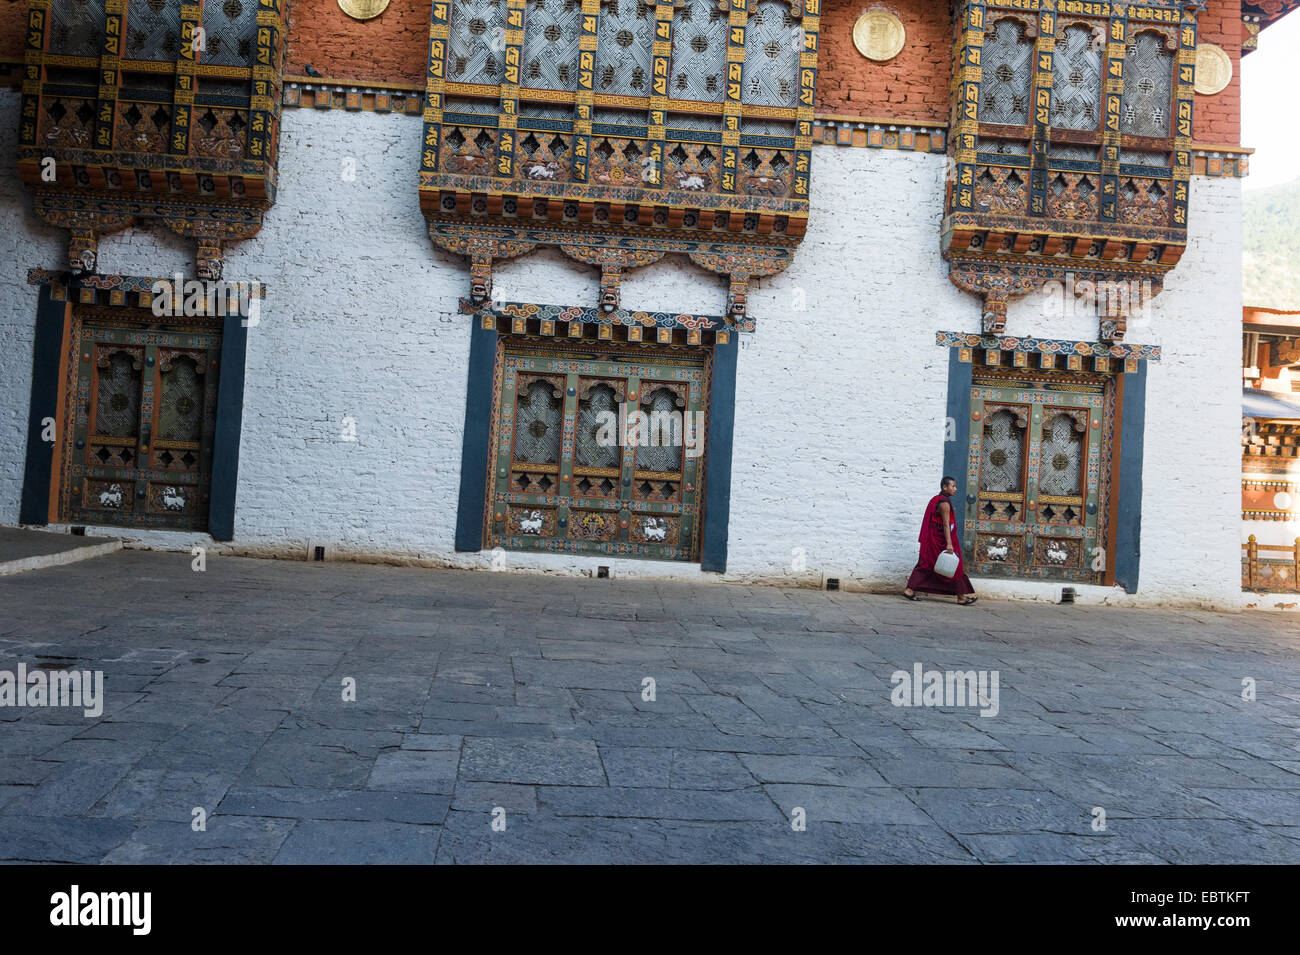 Punakha Dzong, with Monk walking through Courtyard, Bhutan - Stock Image